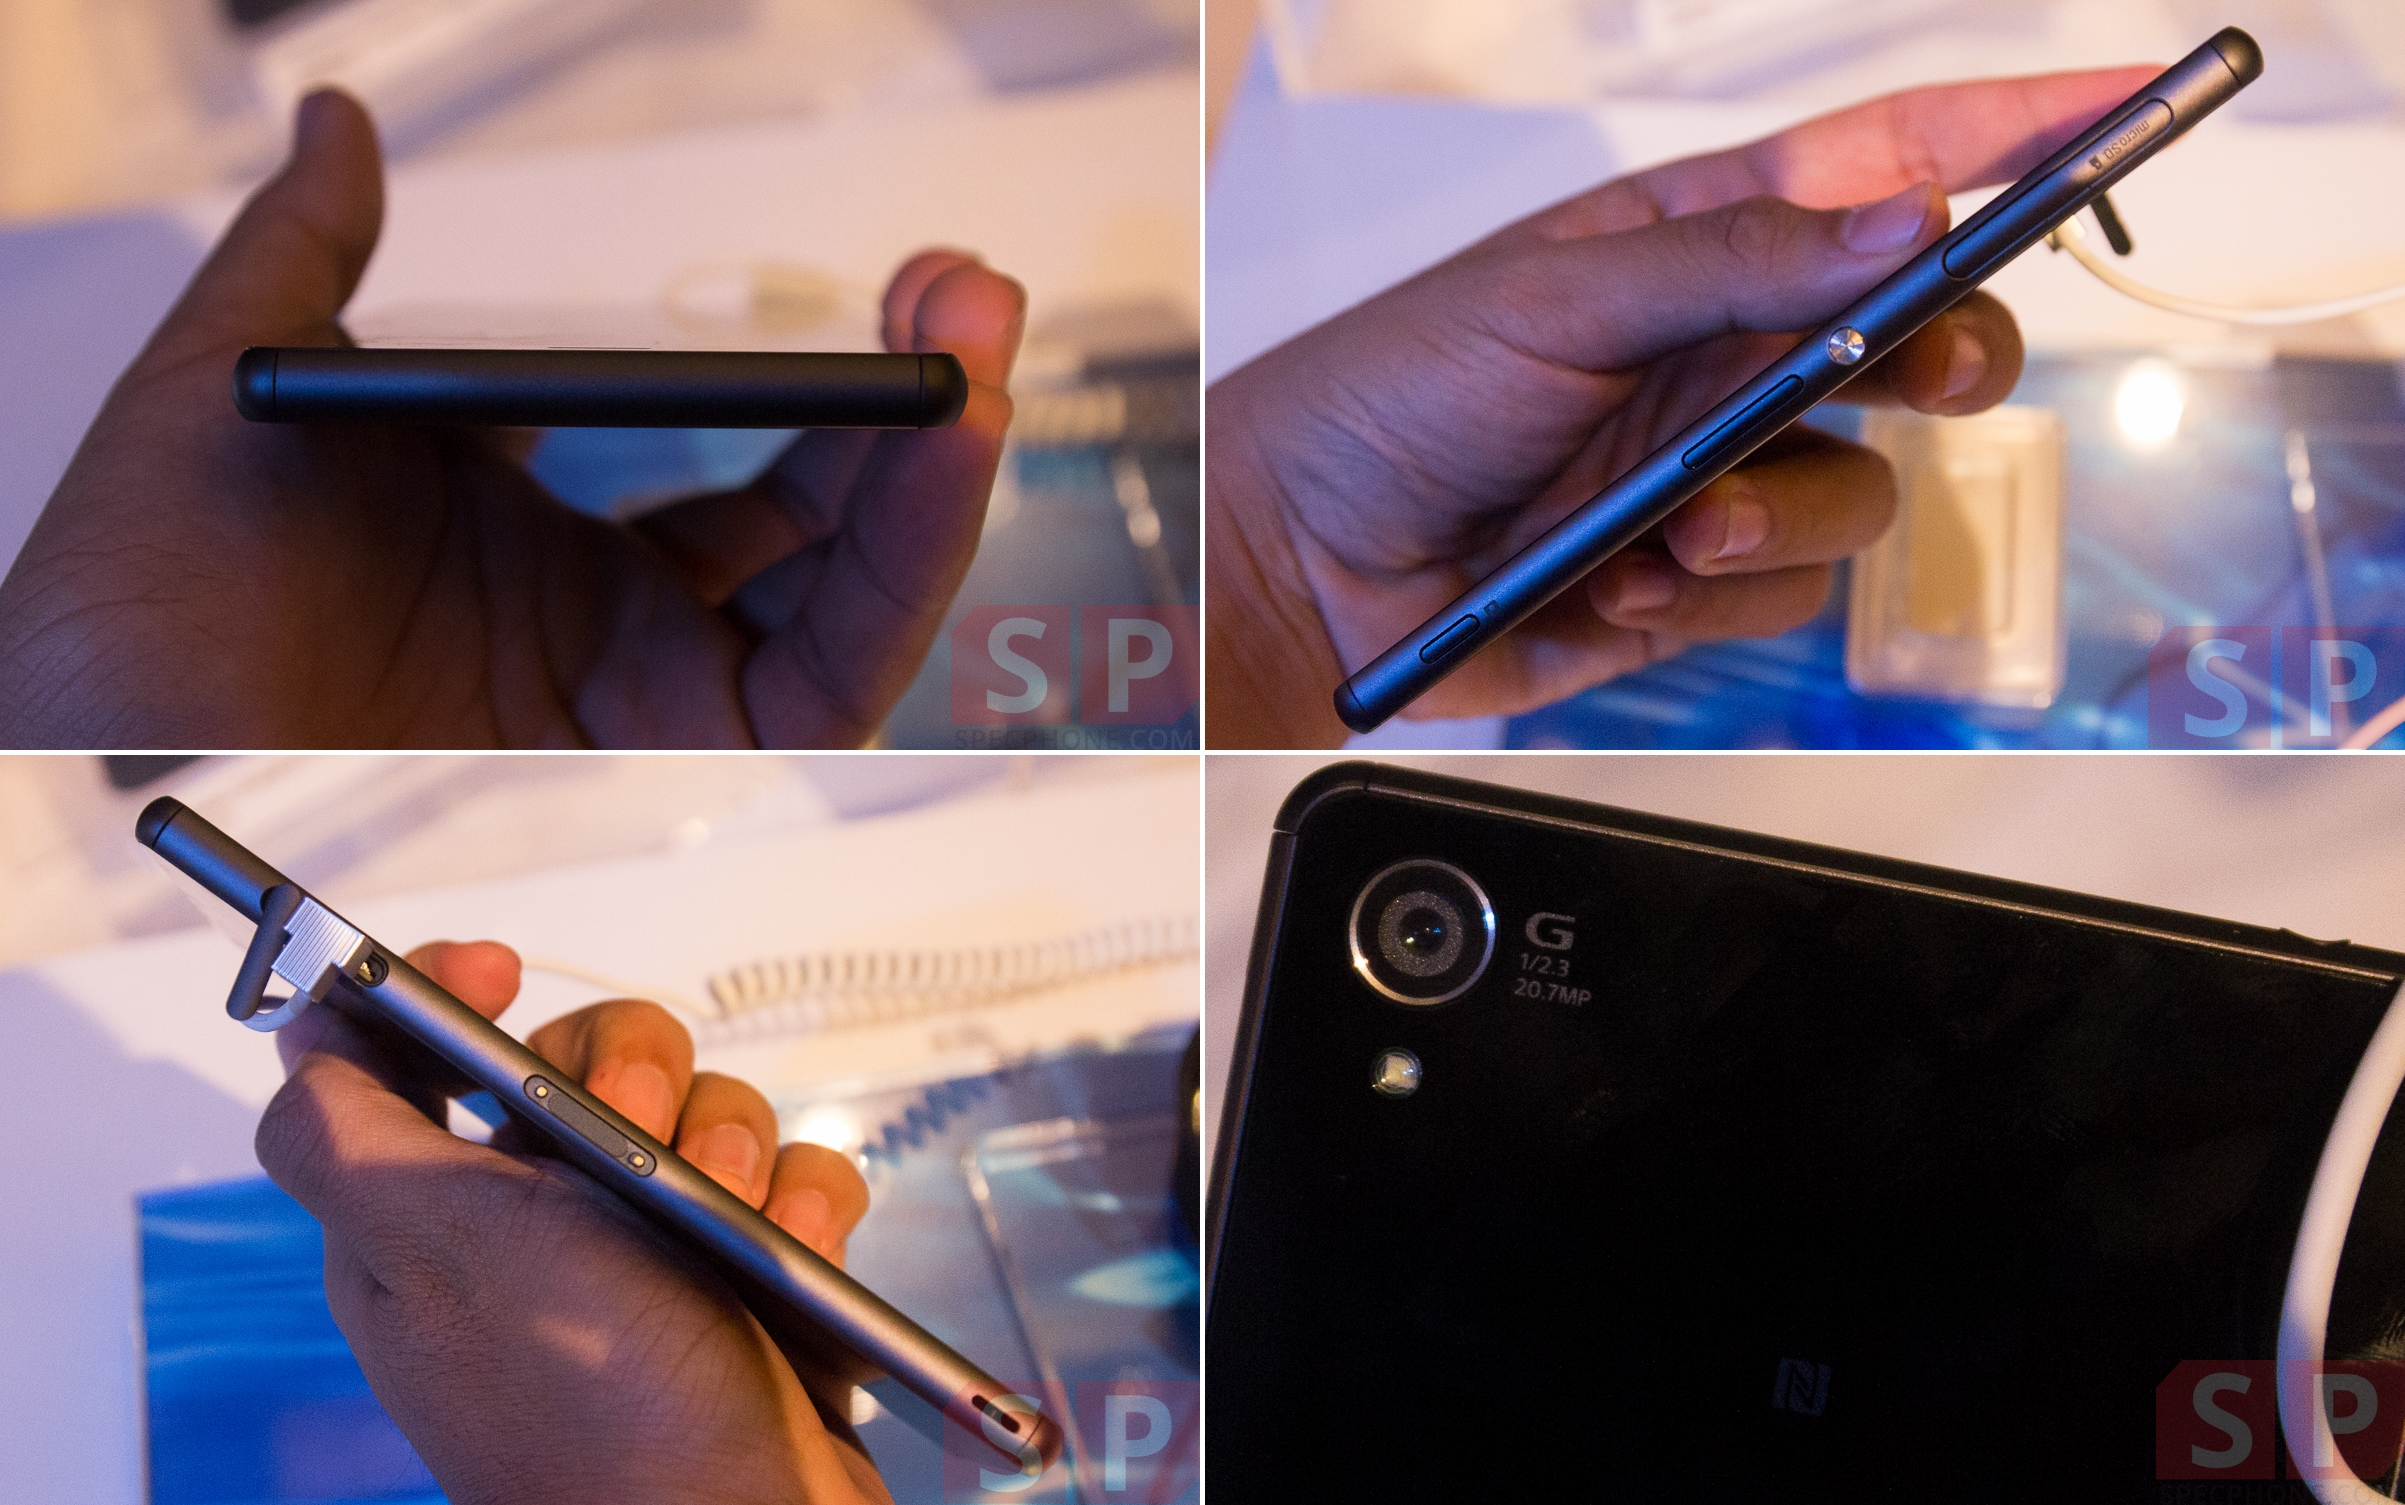 Hands-on-Preview-Sony-Xperia-Z3-Xperia-Z3-Compact-Xperia-Z3-Tablet-Compact-Smartwatch-3-Smartband-Talk-SpecPhone-37-tile